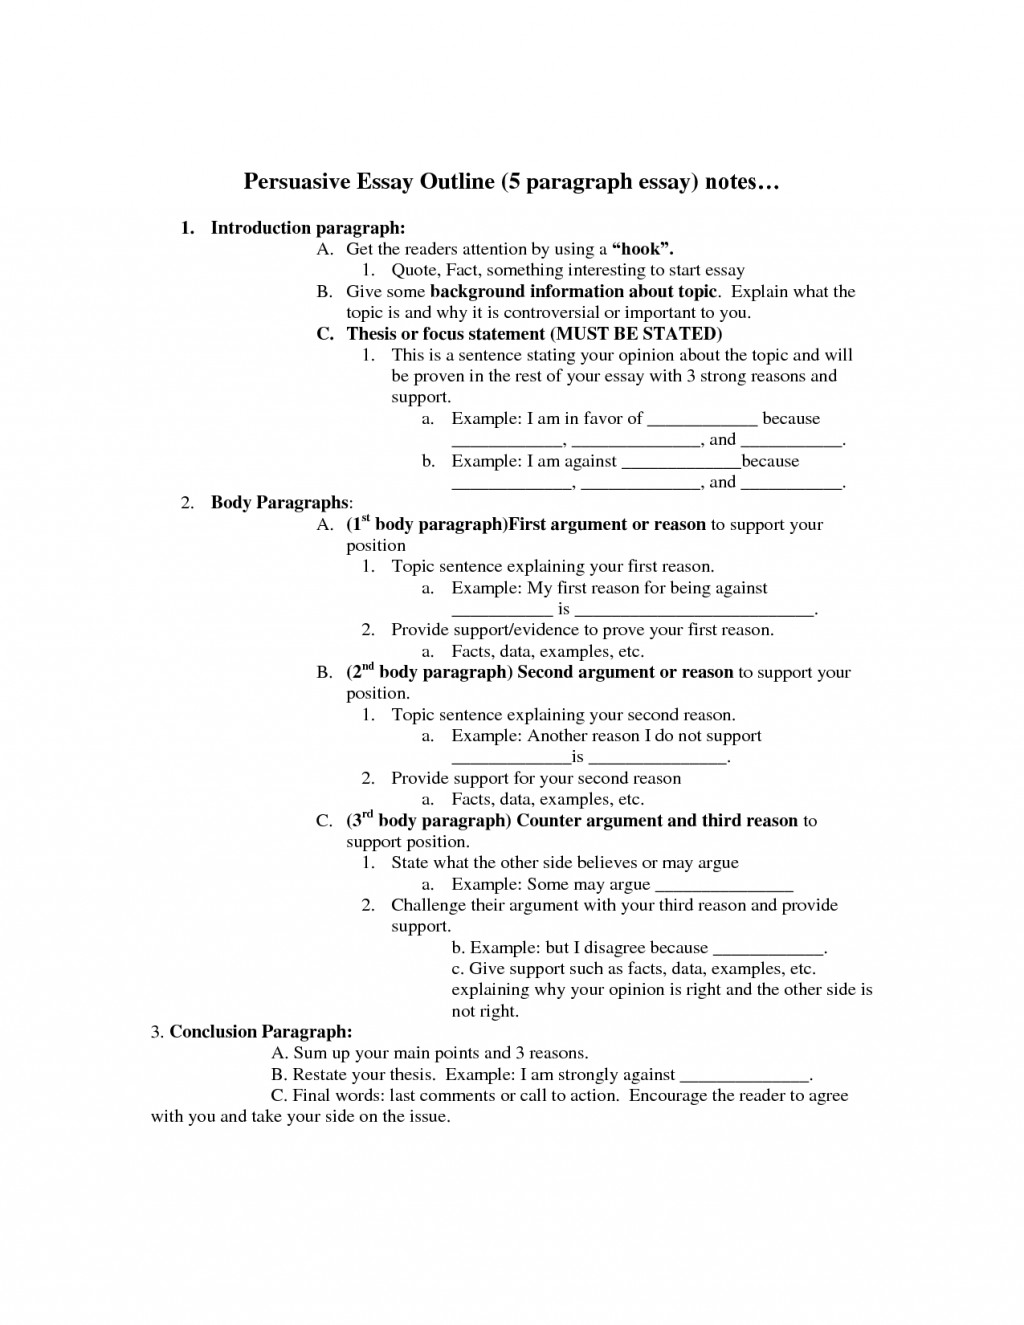 006 Persuasive Essay Outline Unbelievable Format Middle School Template High Pdf Large